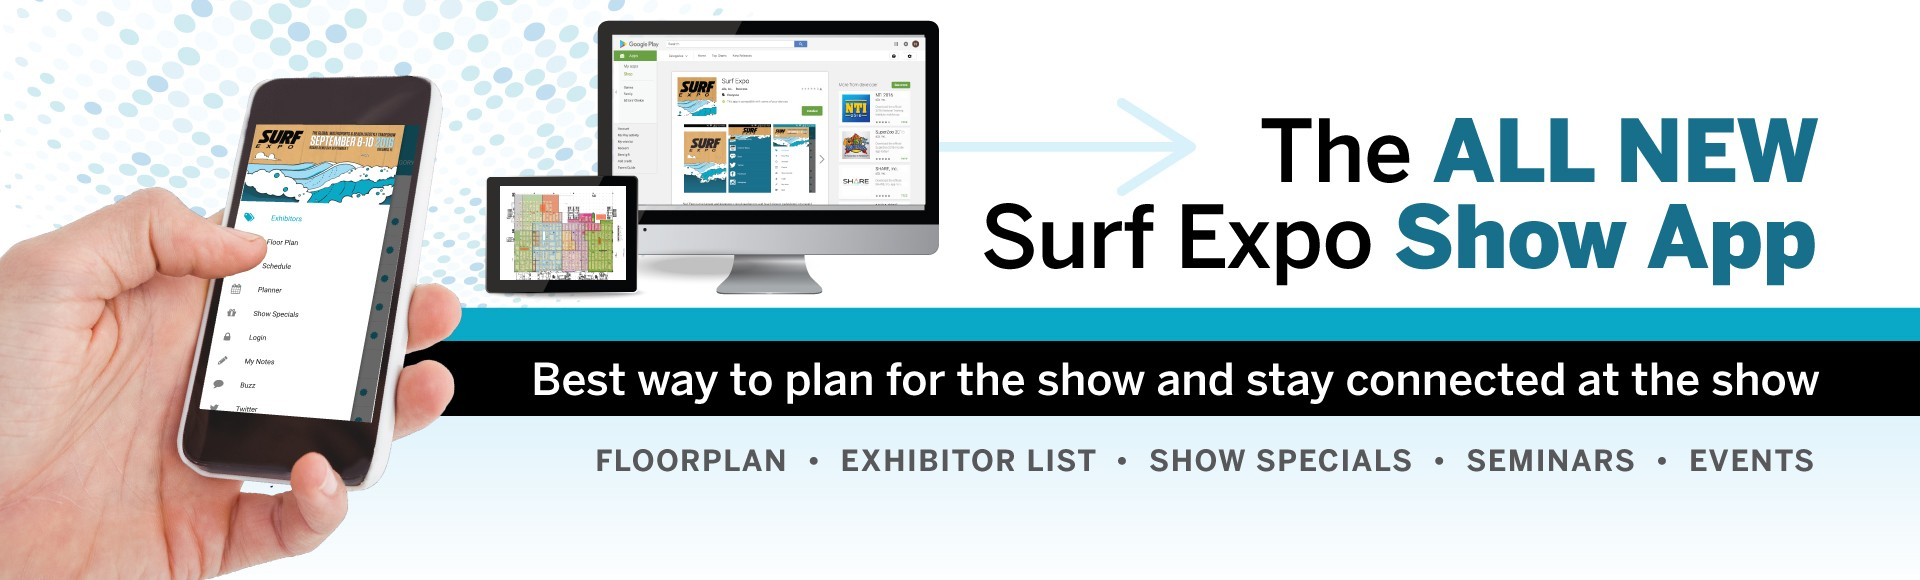 Get the NEW Surf Expo Show App